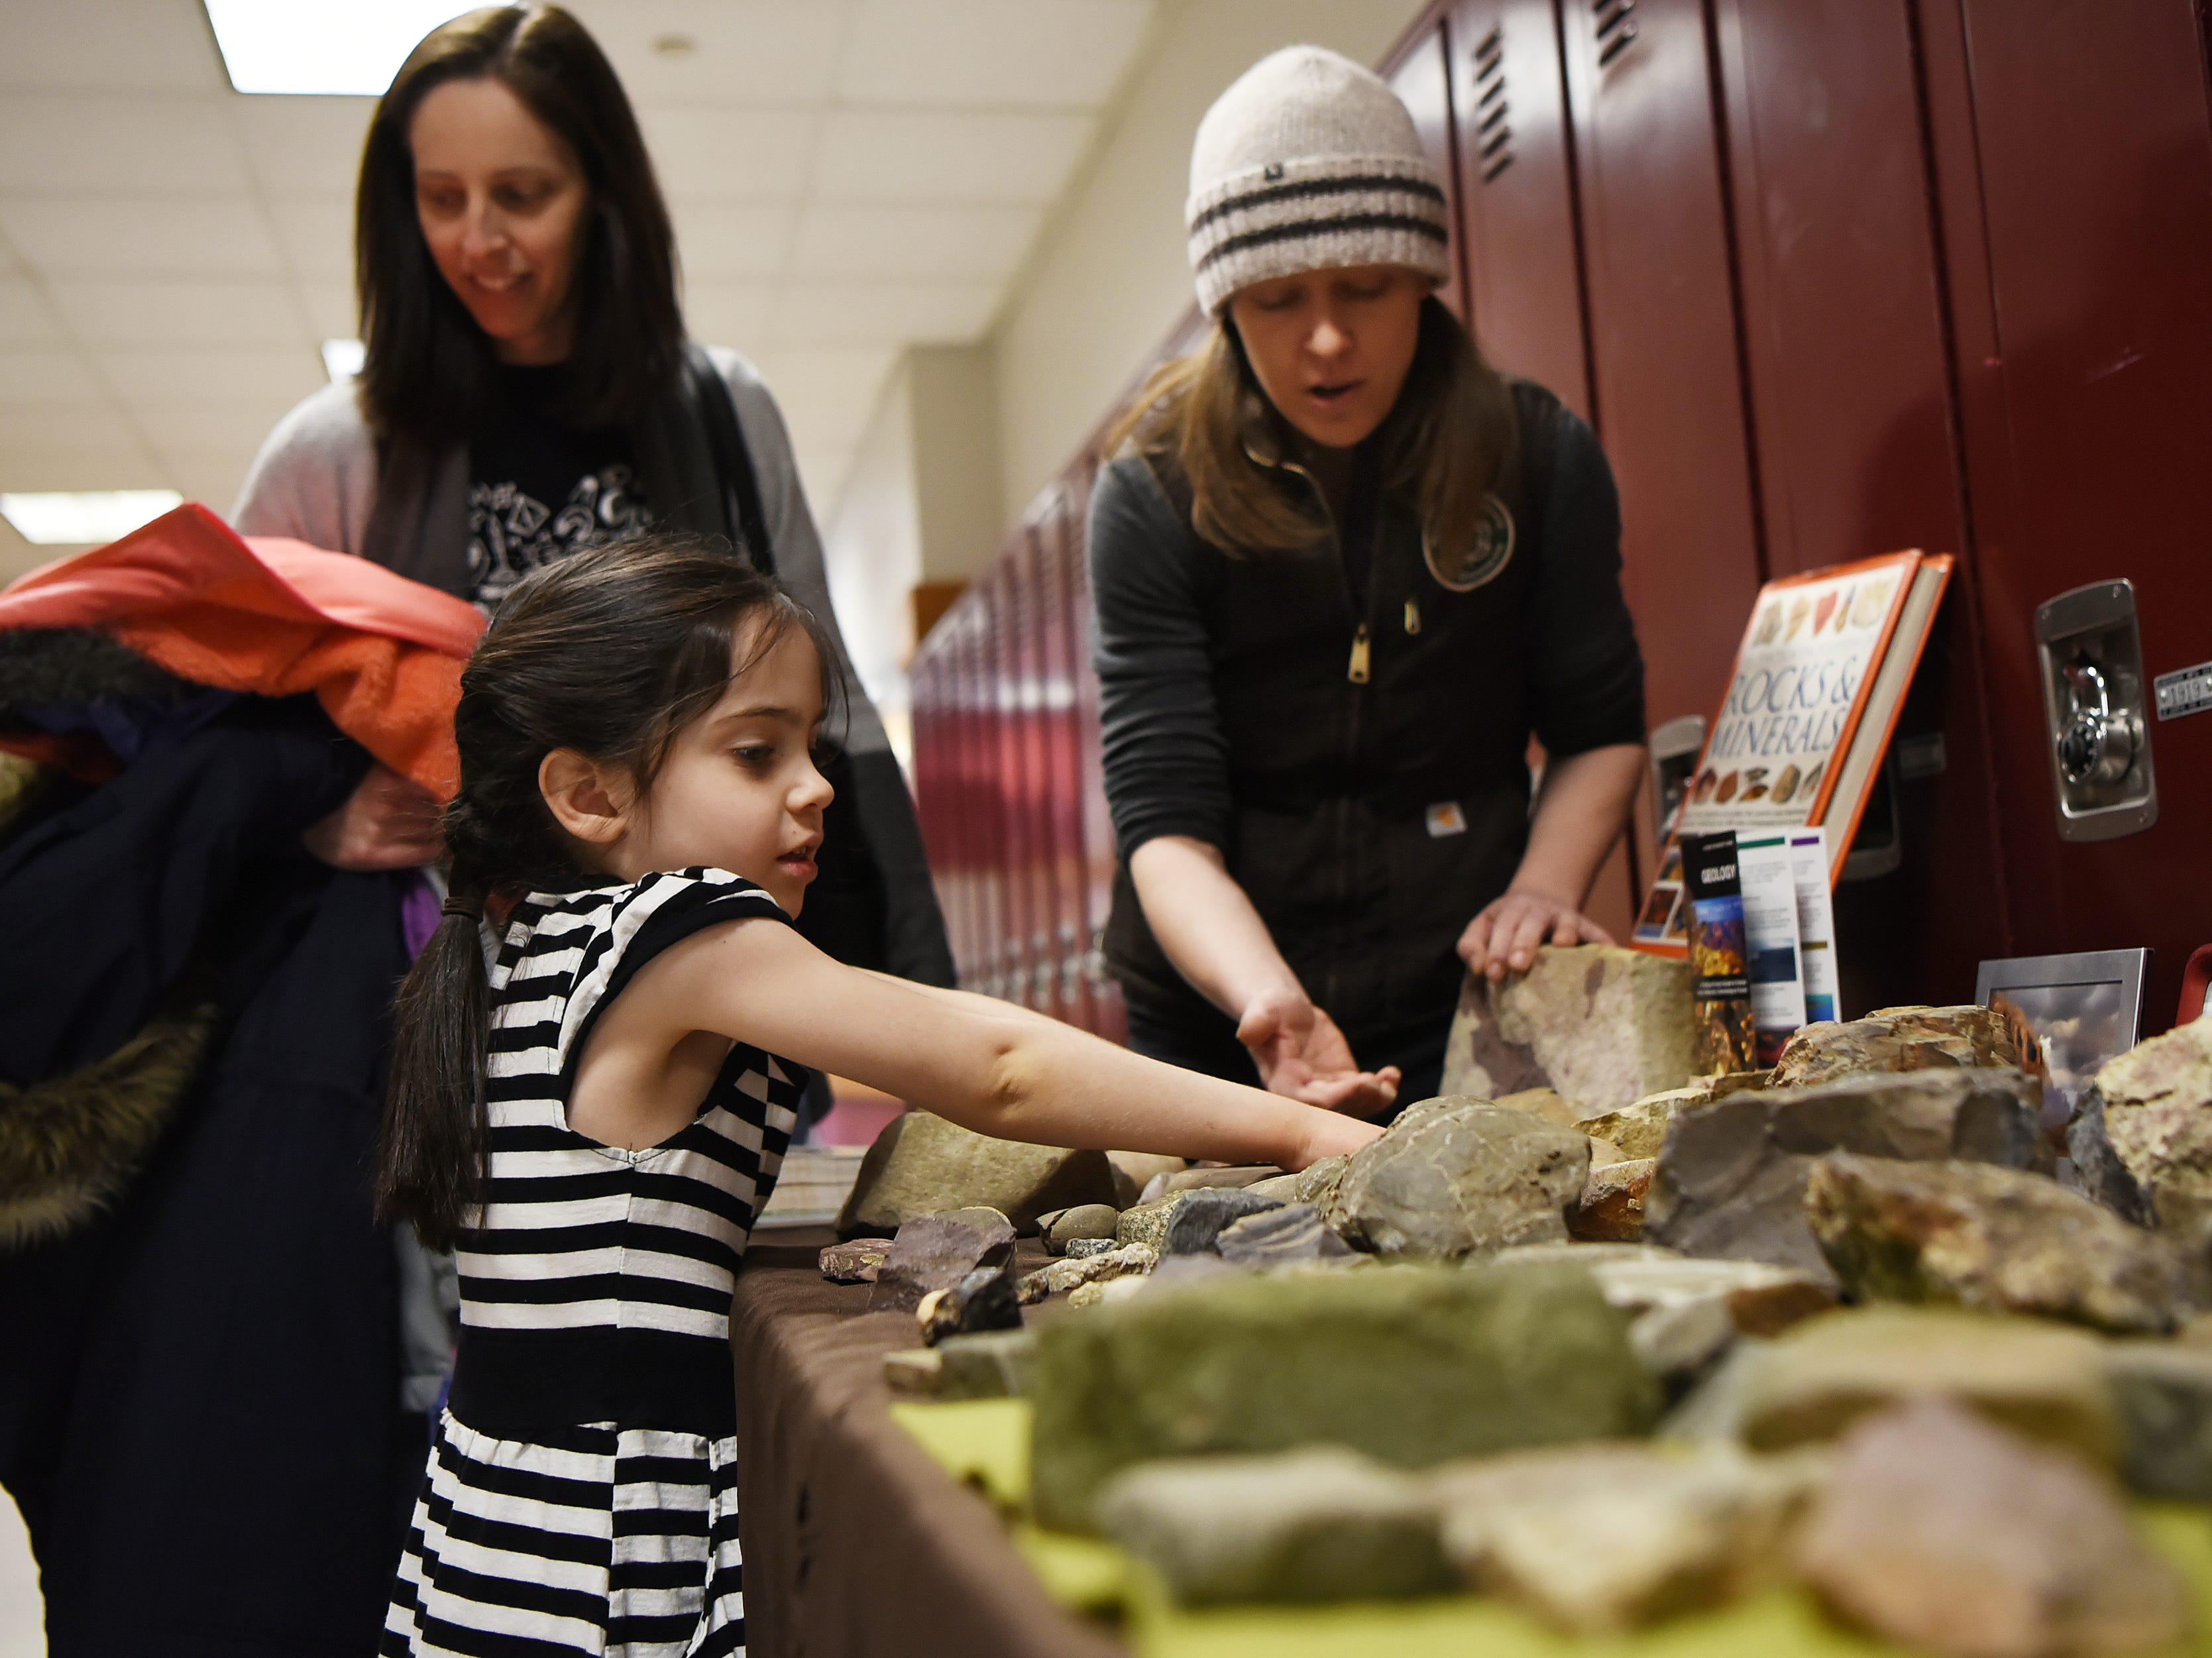 (From left) Candace Lynch and her daughter Margaret Lynch, 5, look at rocks at the 'Geology of the Palisades' table as Christina Fehre shows them some samples. This is one of many hands on activities at Super Science Saturday held in Ridgewood High School in Ridgewood on Saturday March 2, 2019.